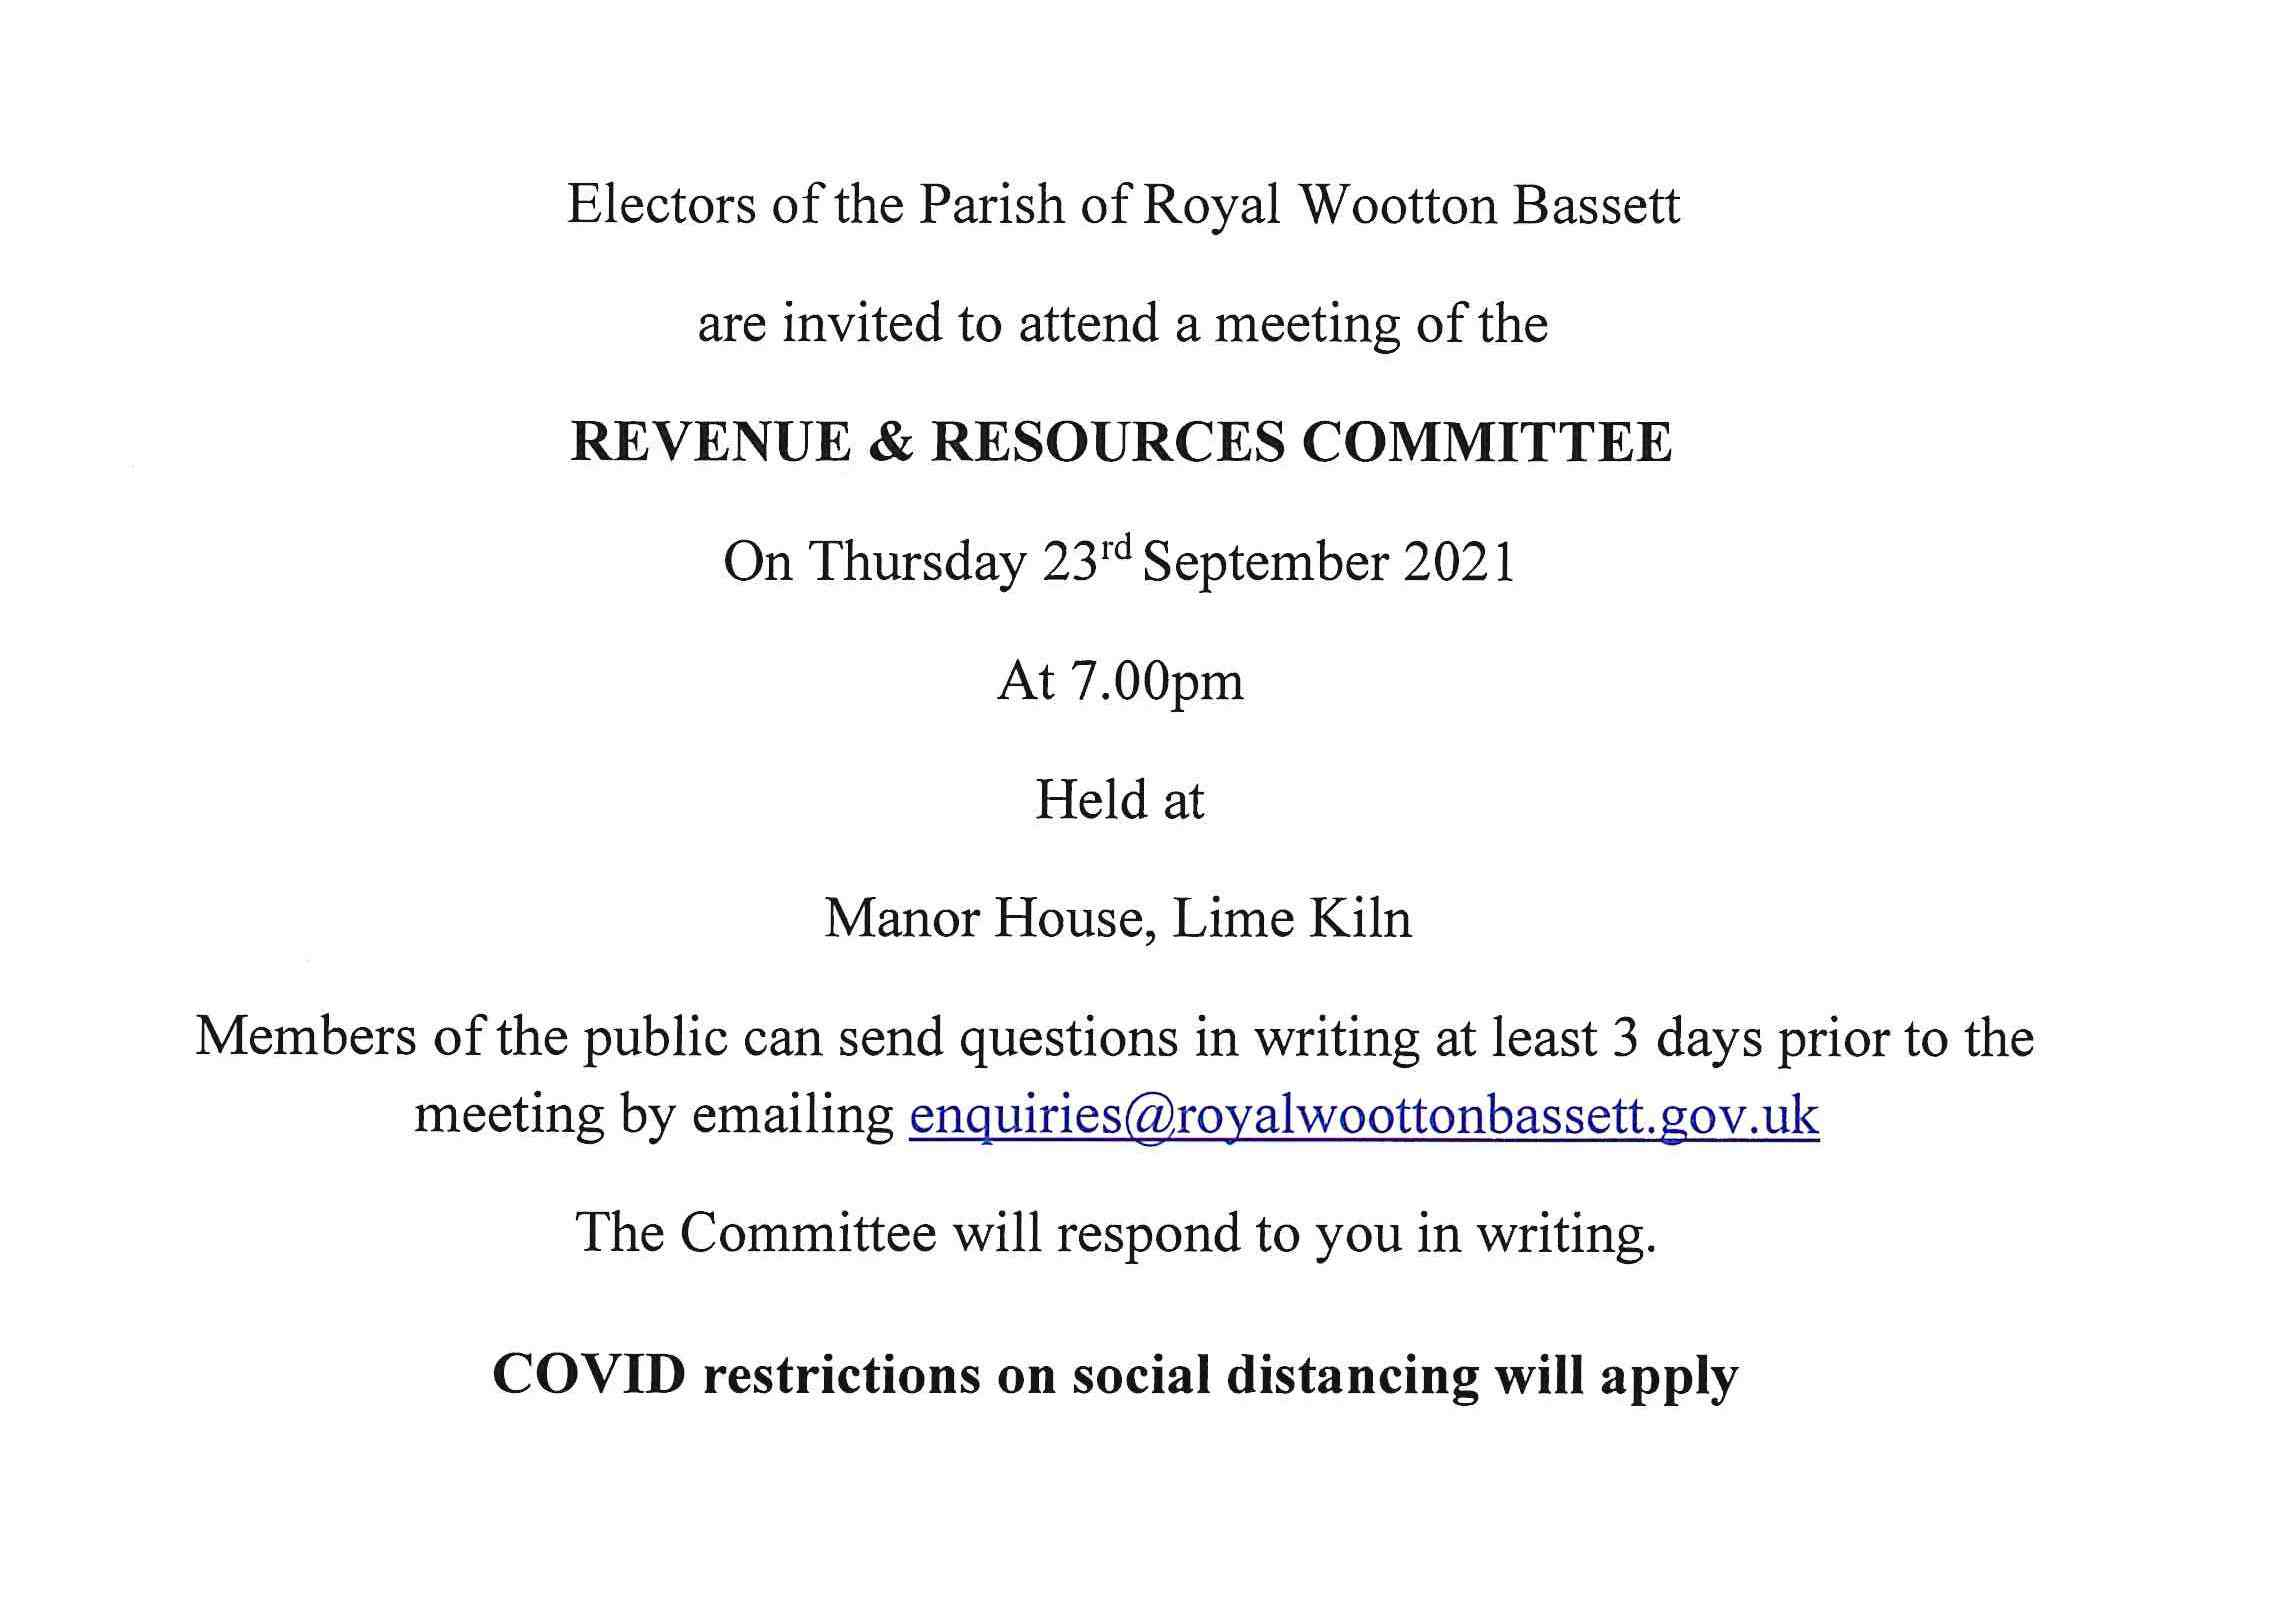 Revenue and Resources Meeting Notice